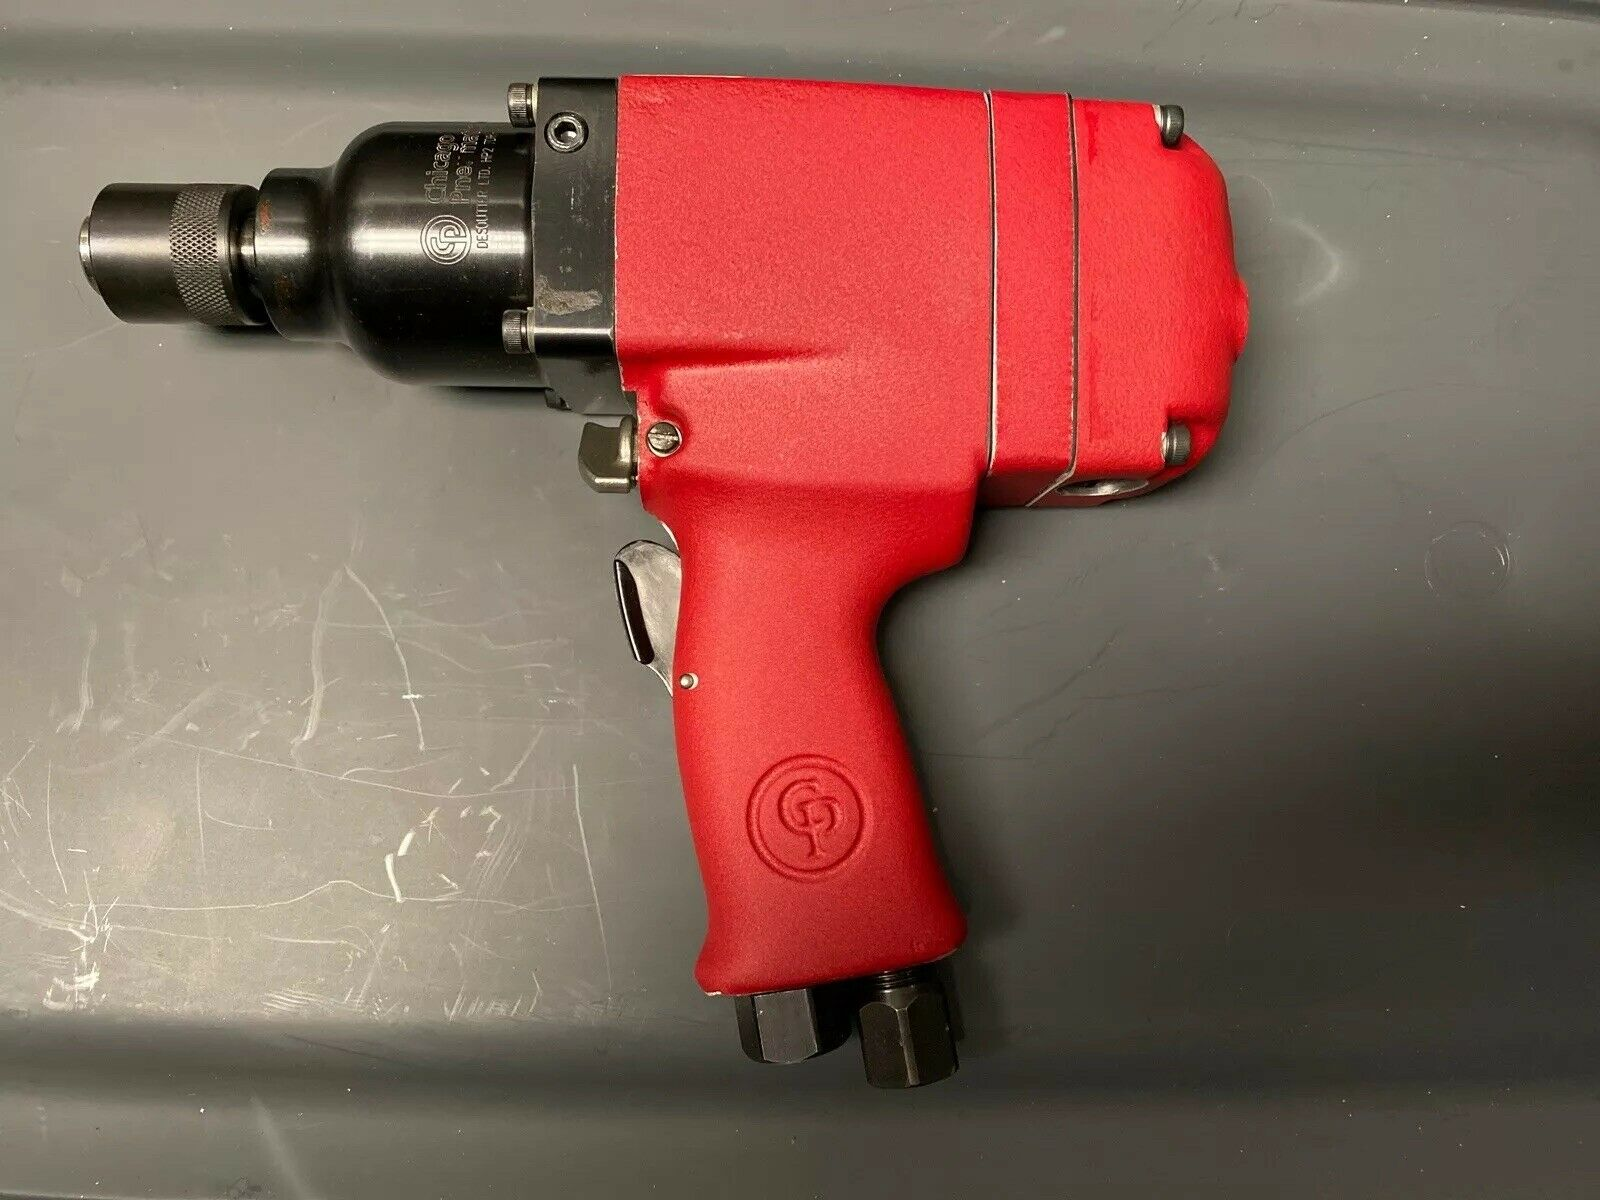 Chicago Pneumatic Ind., Impact Wrench, CP-6041 TEBAD T021954, Torque Control. Buy it now for 299.99